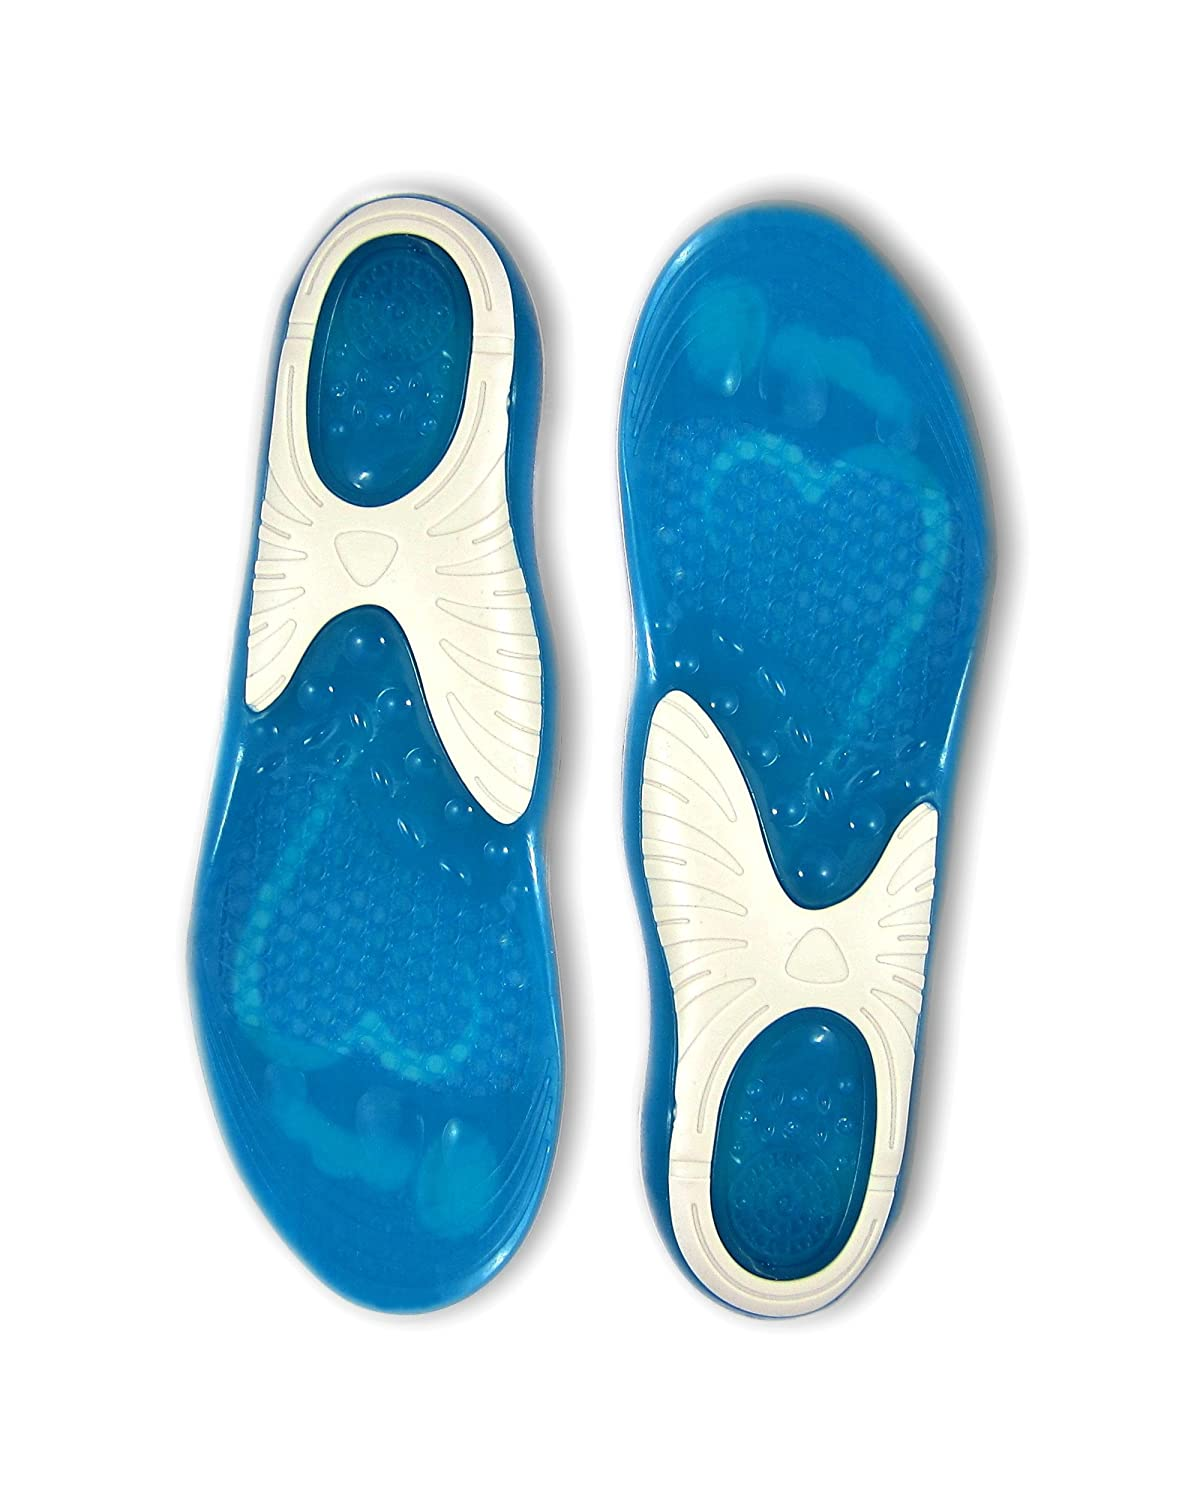 Syono orthotic shoe inserts and gel insoles